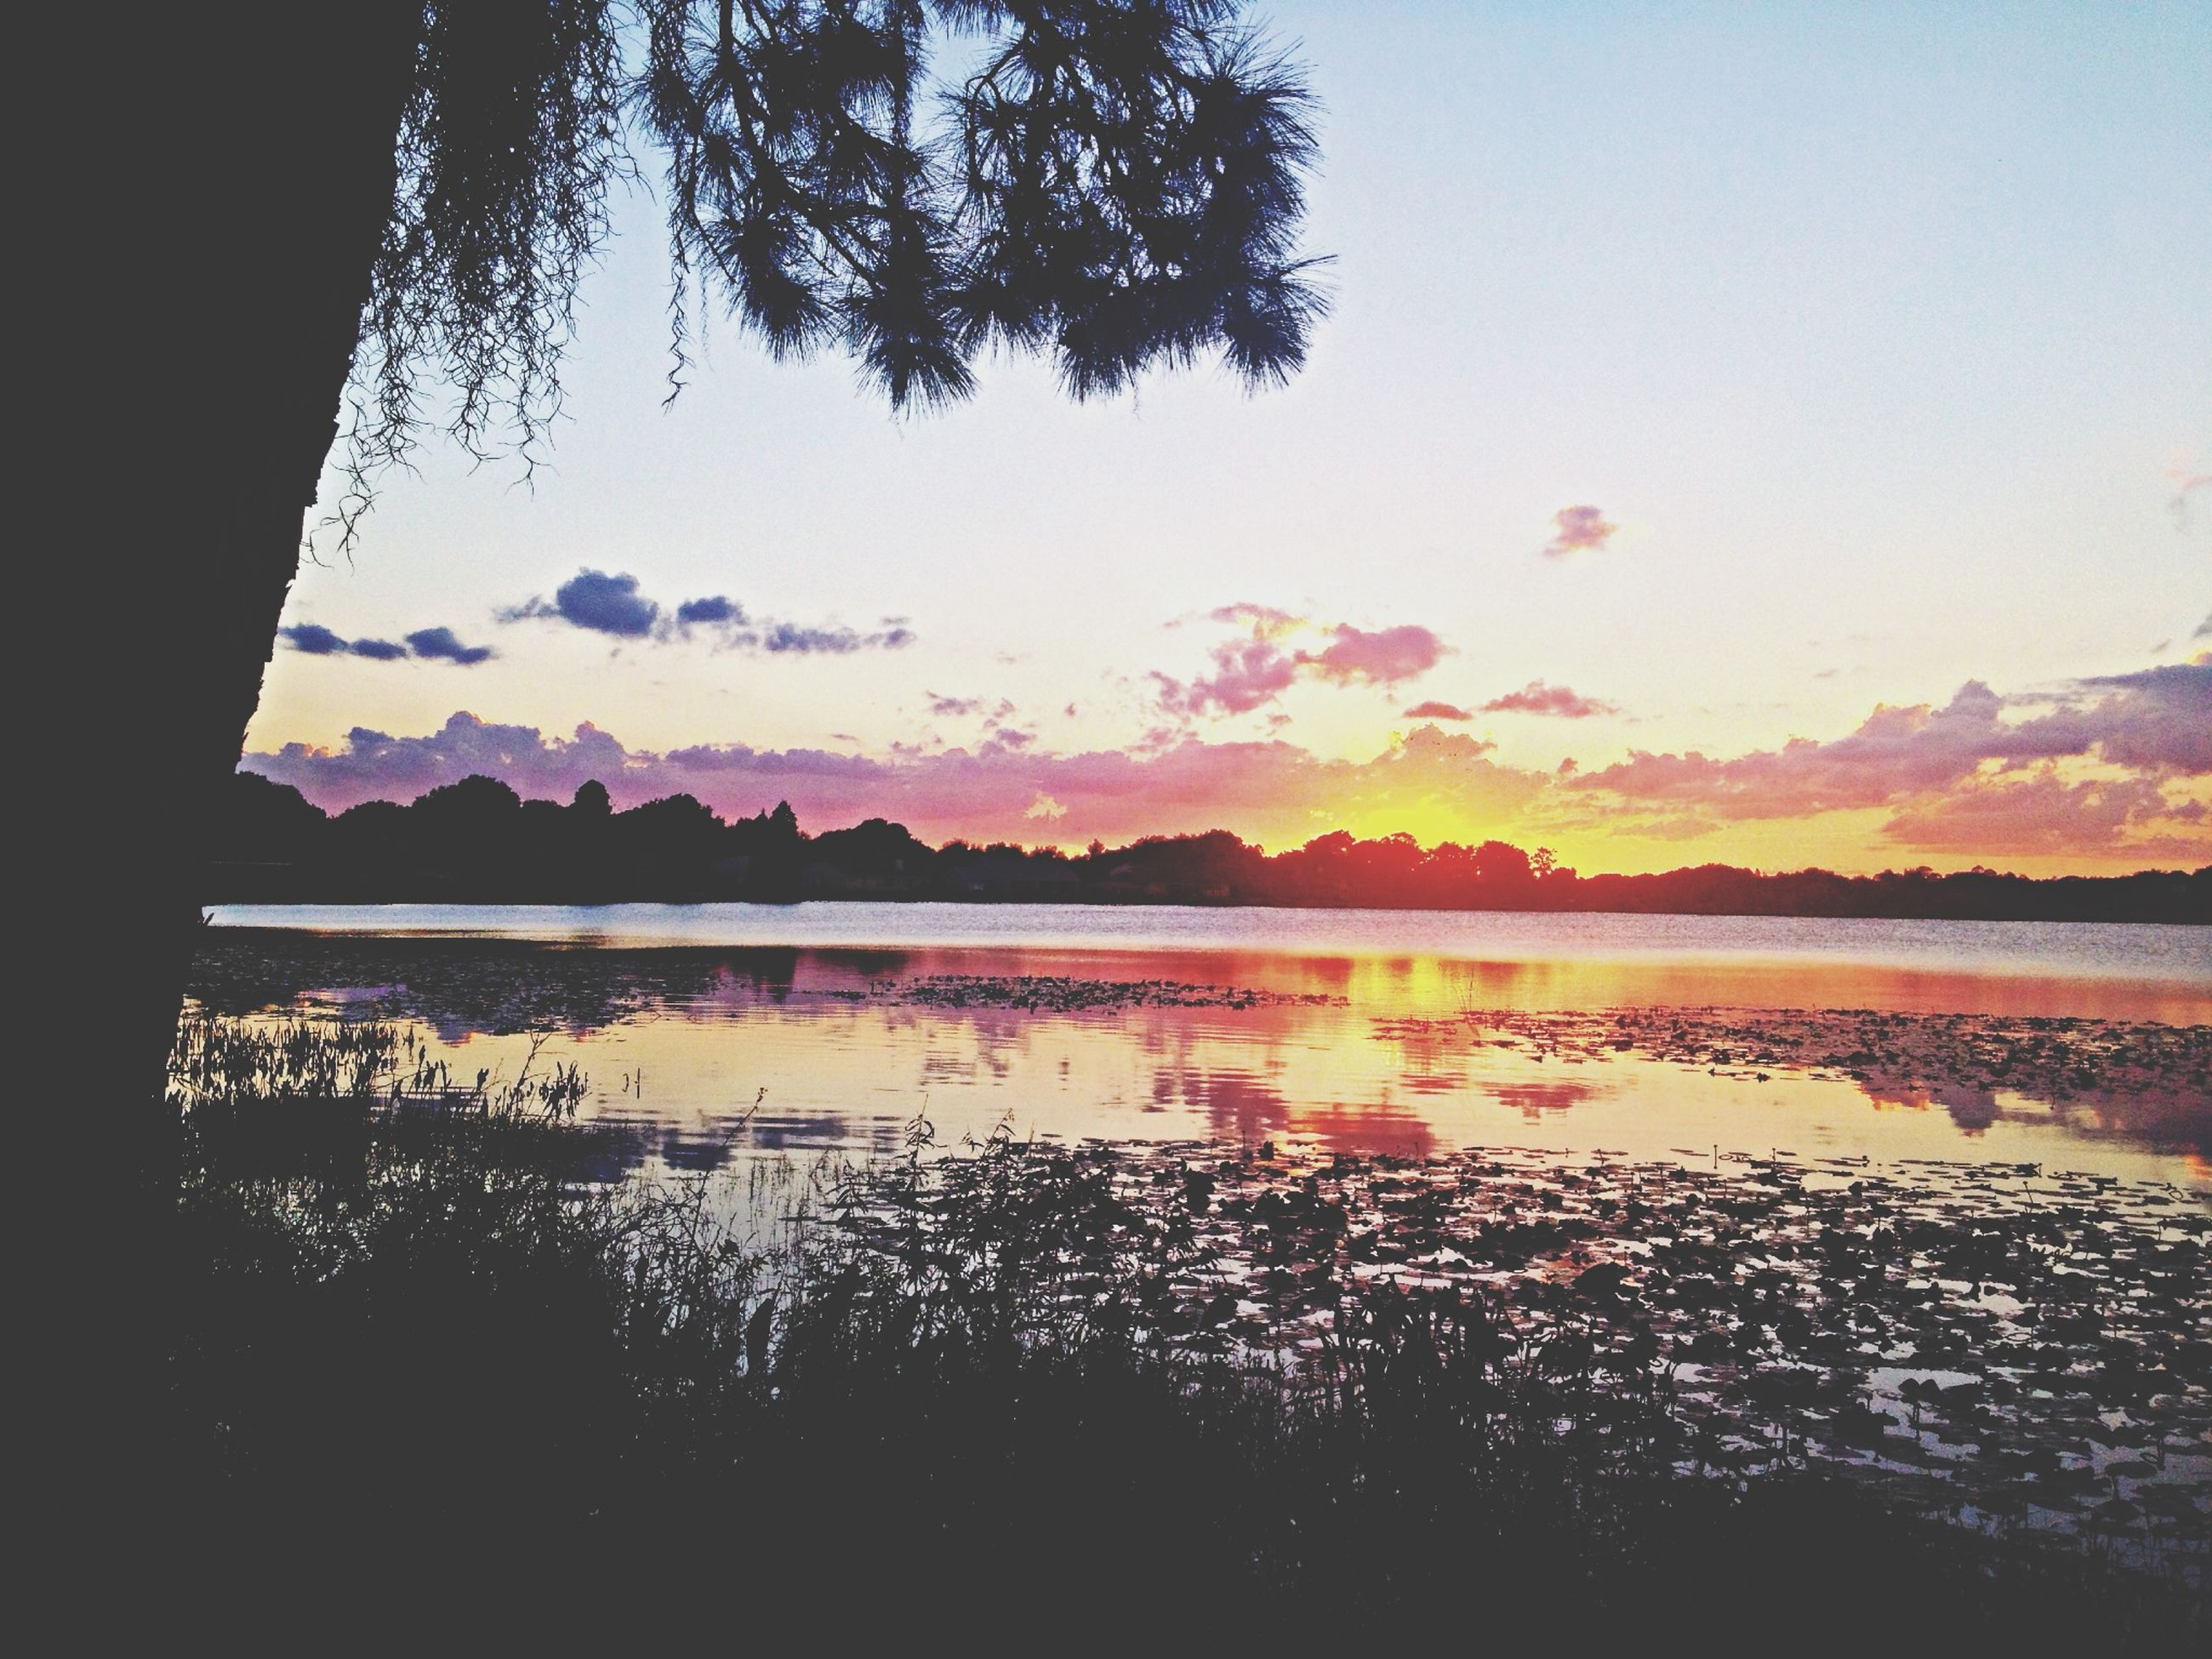 tranquil scene, sunset, tranquility, water, scenics, lake, beauty in nature, reflection, sky, silhouette, nature, tree, idyllic, mountain, calm, plant, outdoors, growth, no people, clear sky